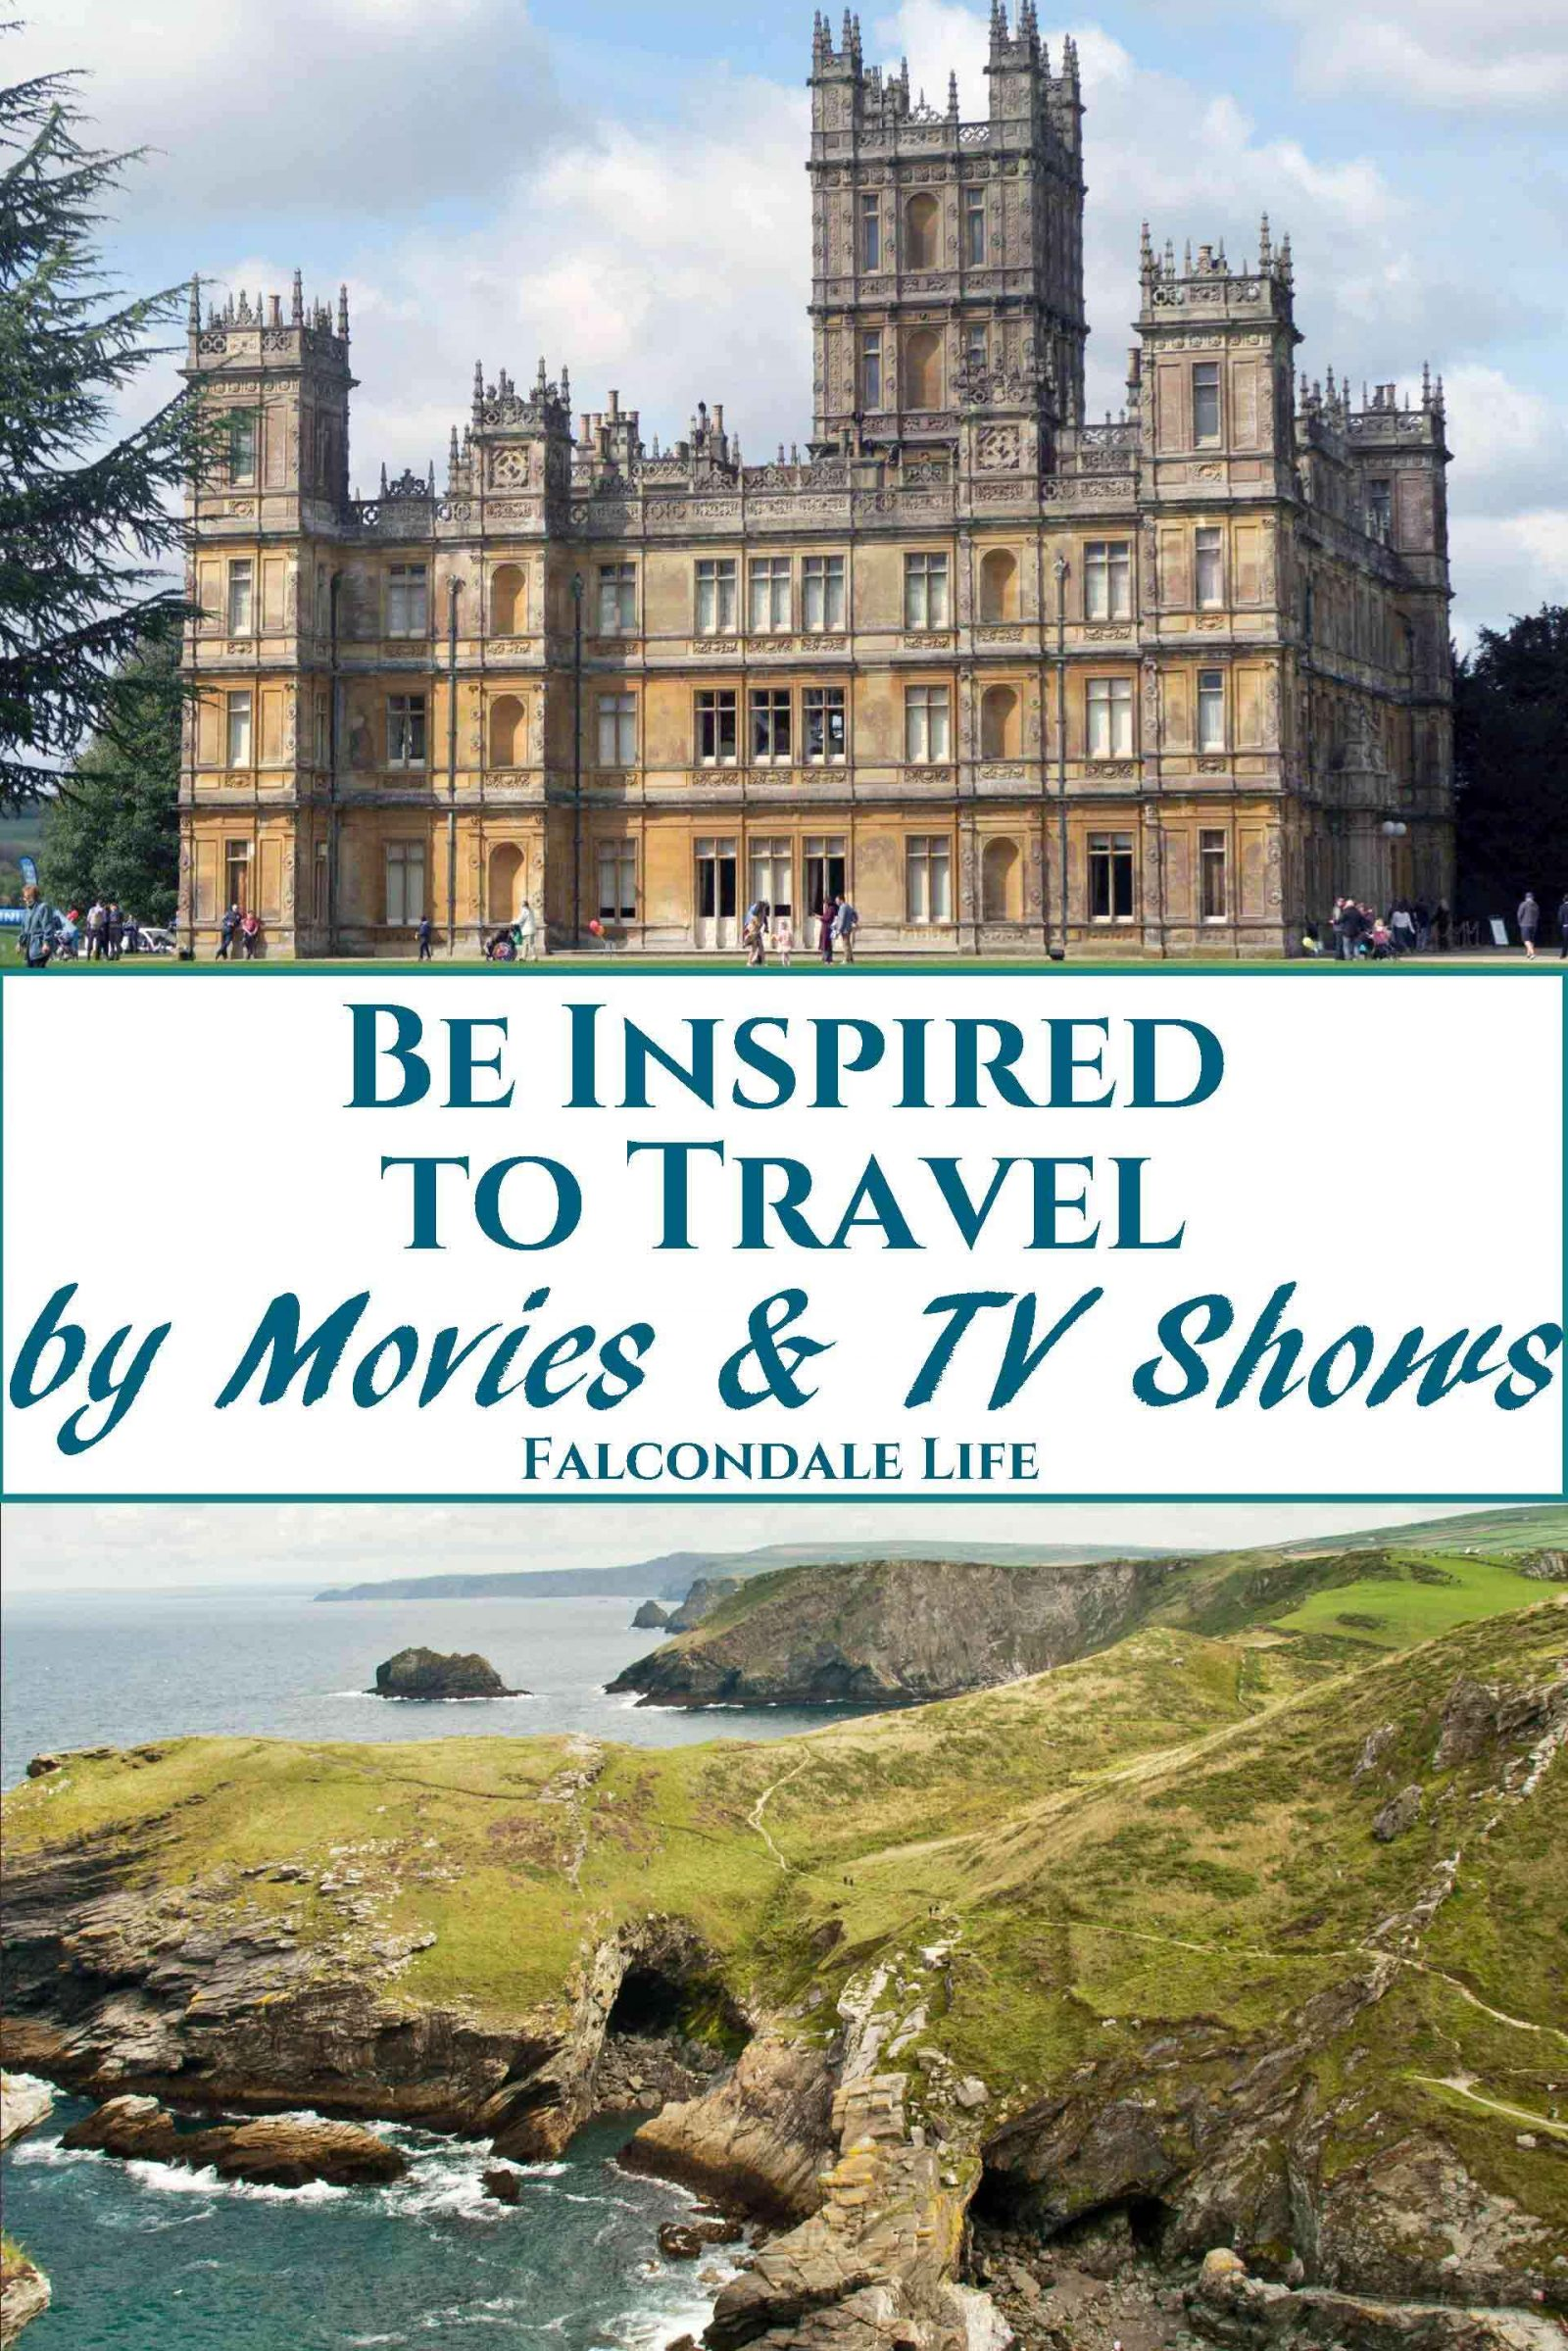 Make a connection with your destination by visiting places from your favourite movies and TV shows. I was inspired to travel by dramatic views and culture. Be Inspired to Travel by Movies and TV on Falcondale Life blog. Image description: Highclere castle the site of Downton Abbey and the mirrored hall at Versailles plus blog title.